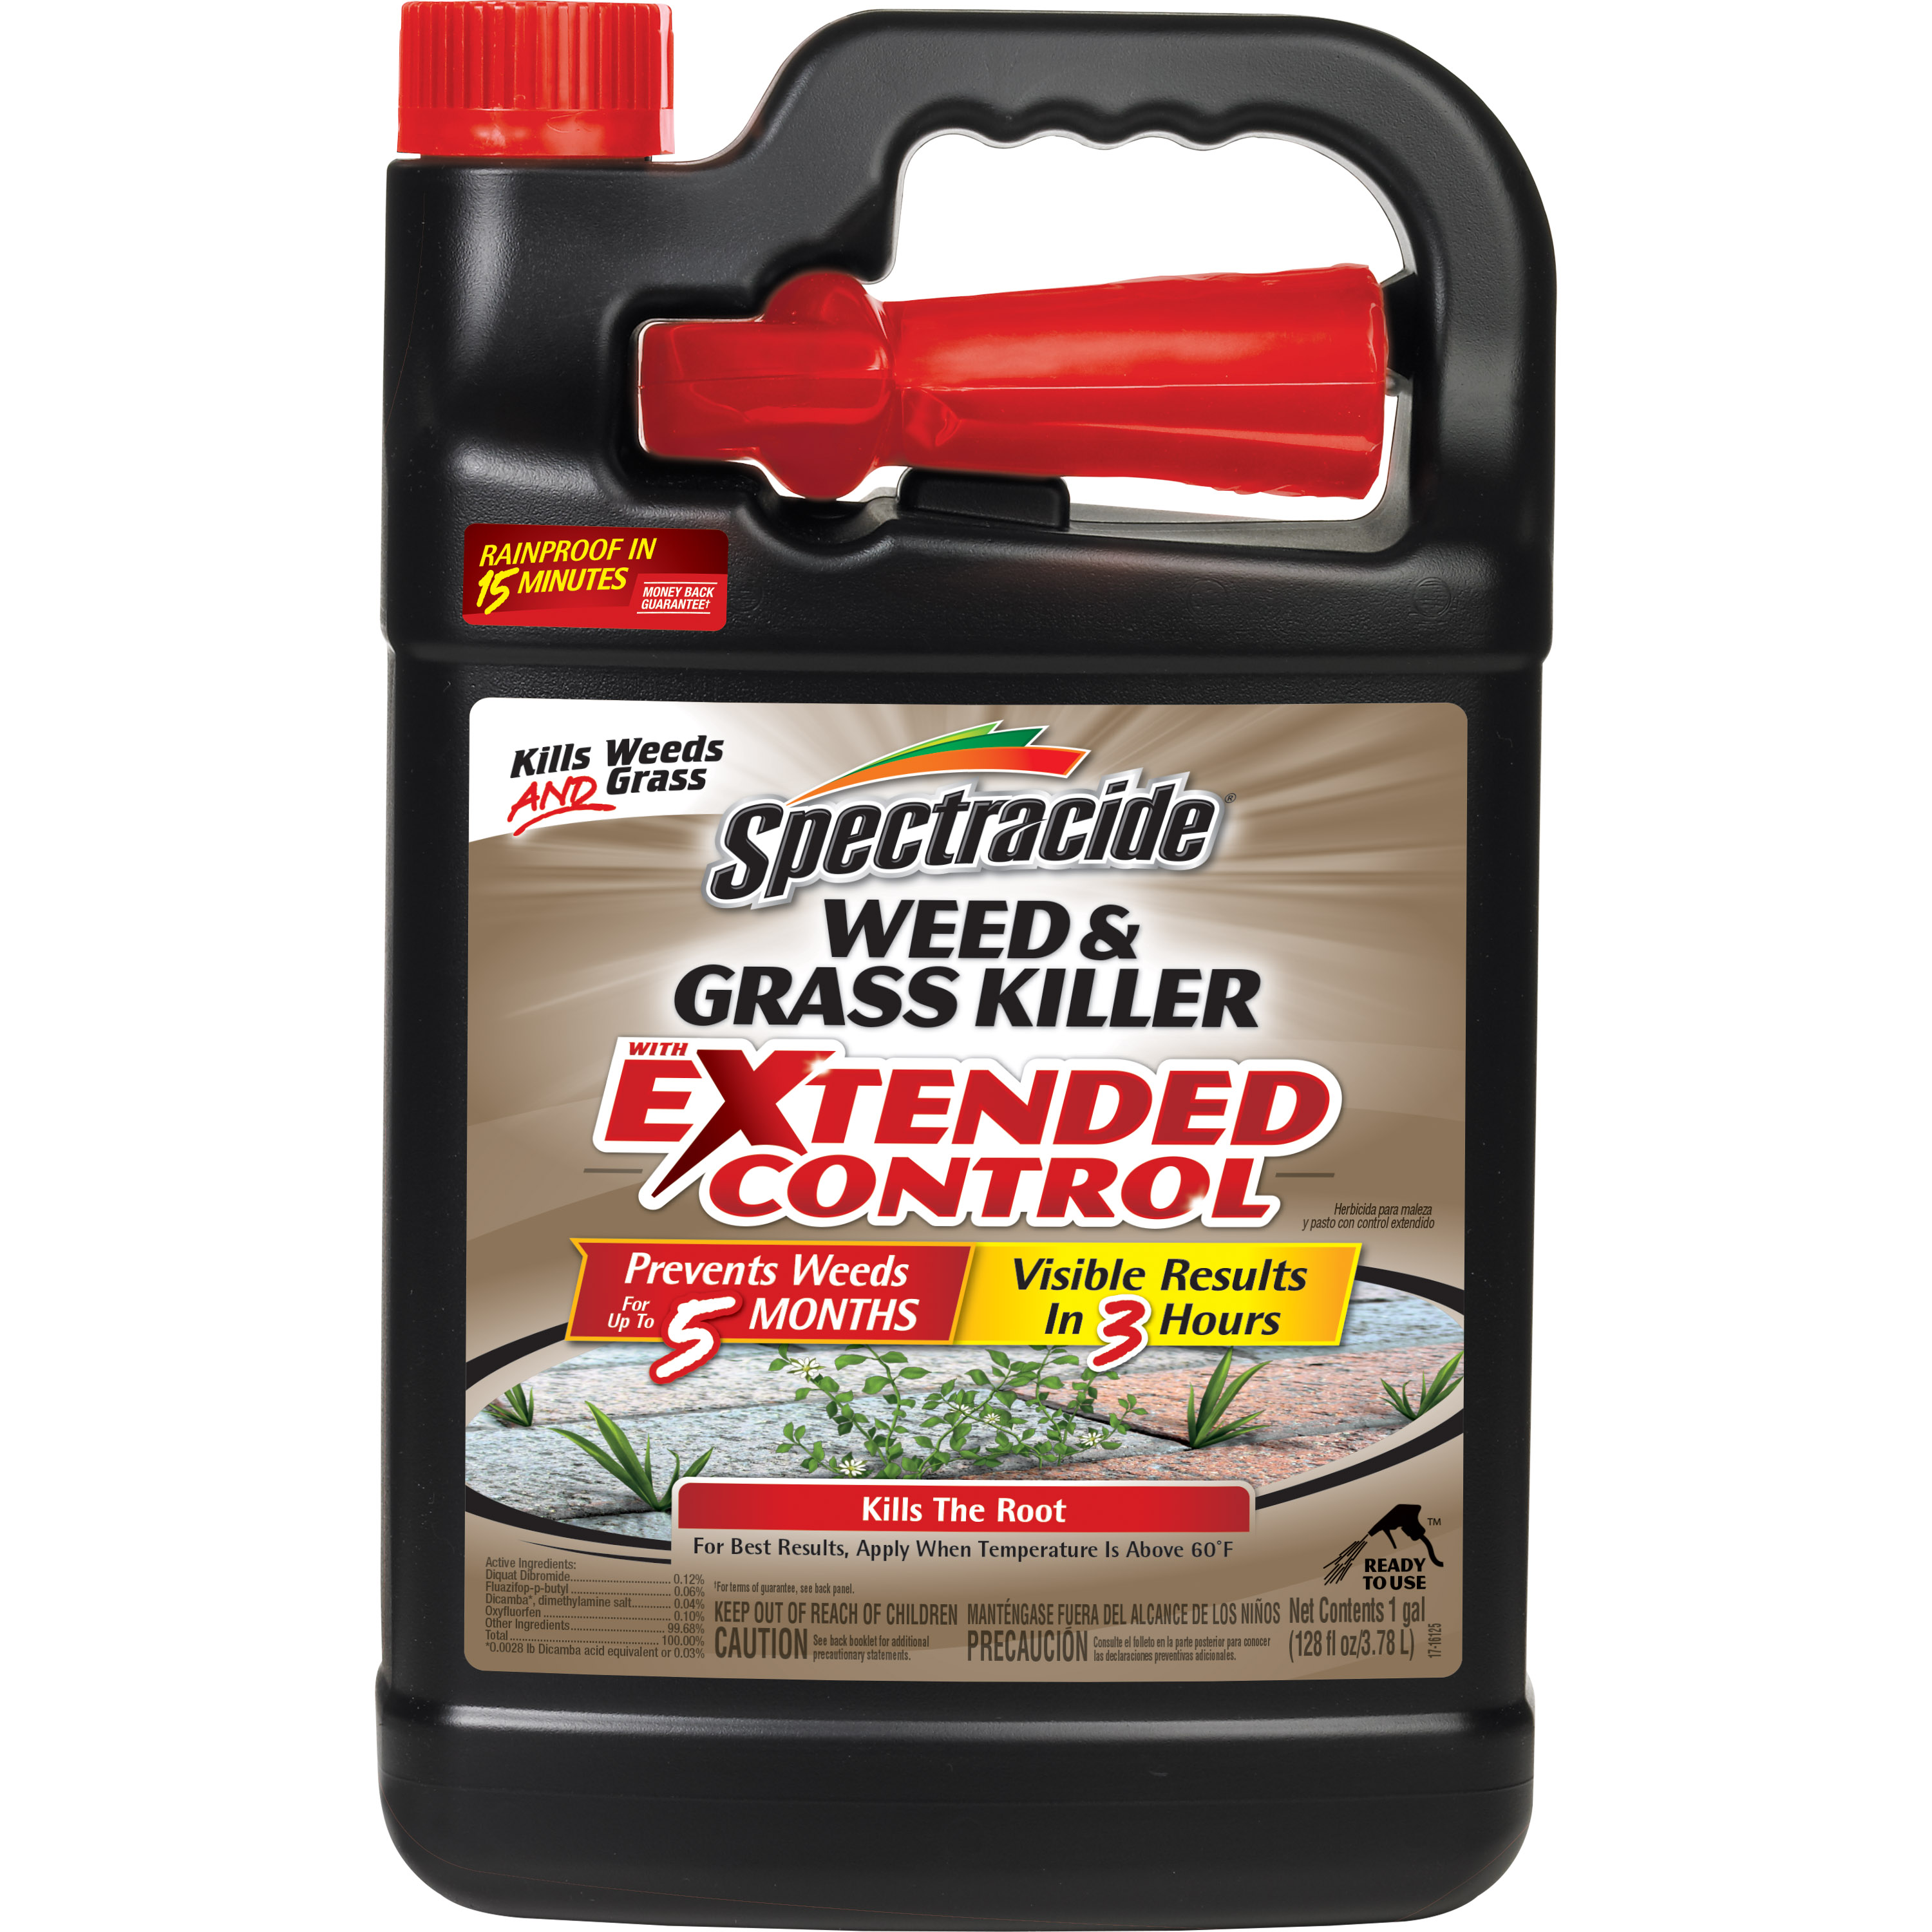 Spectracide Weed & Grass Killer With Extended Control, Ready-to-Use, 1-gallon